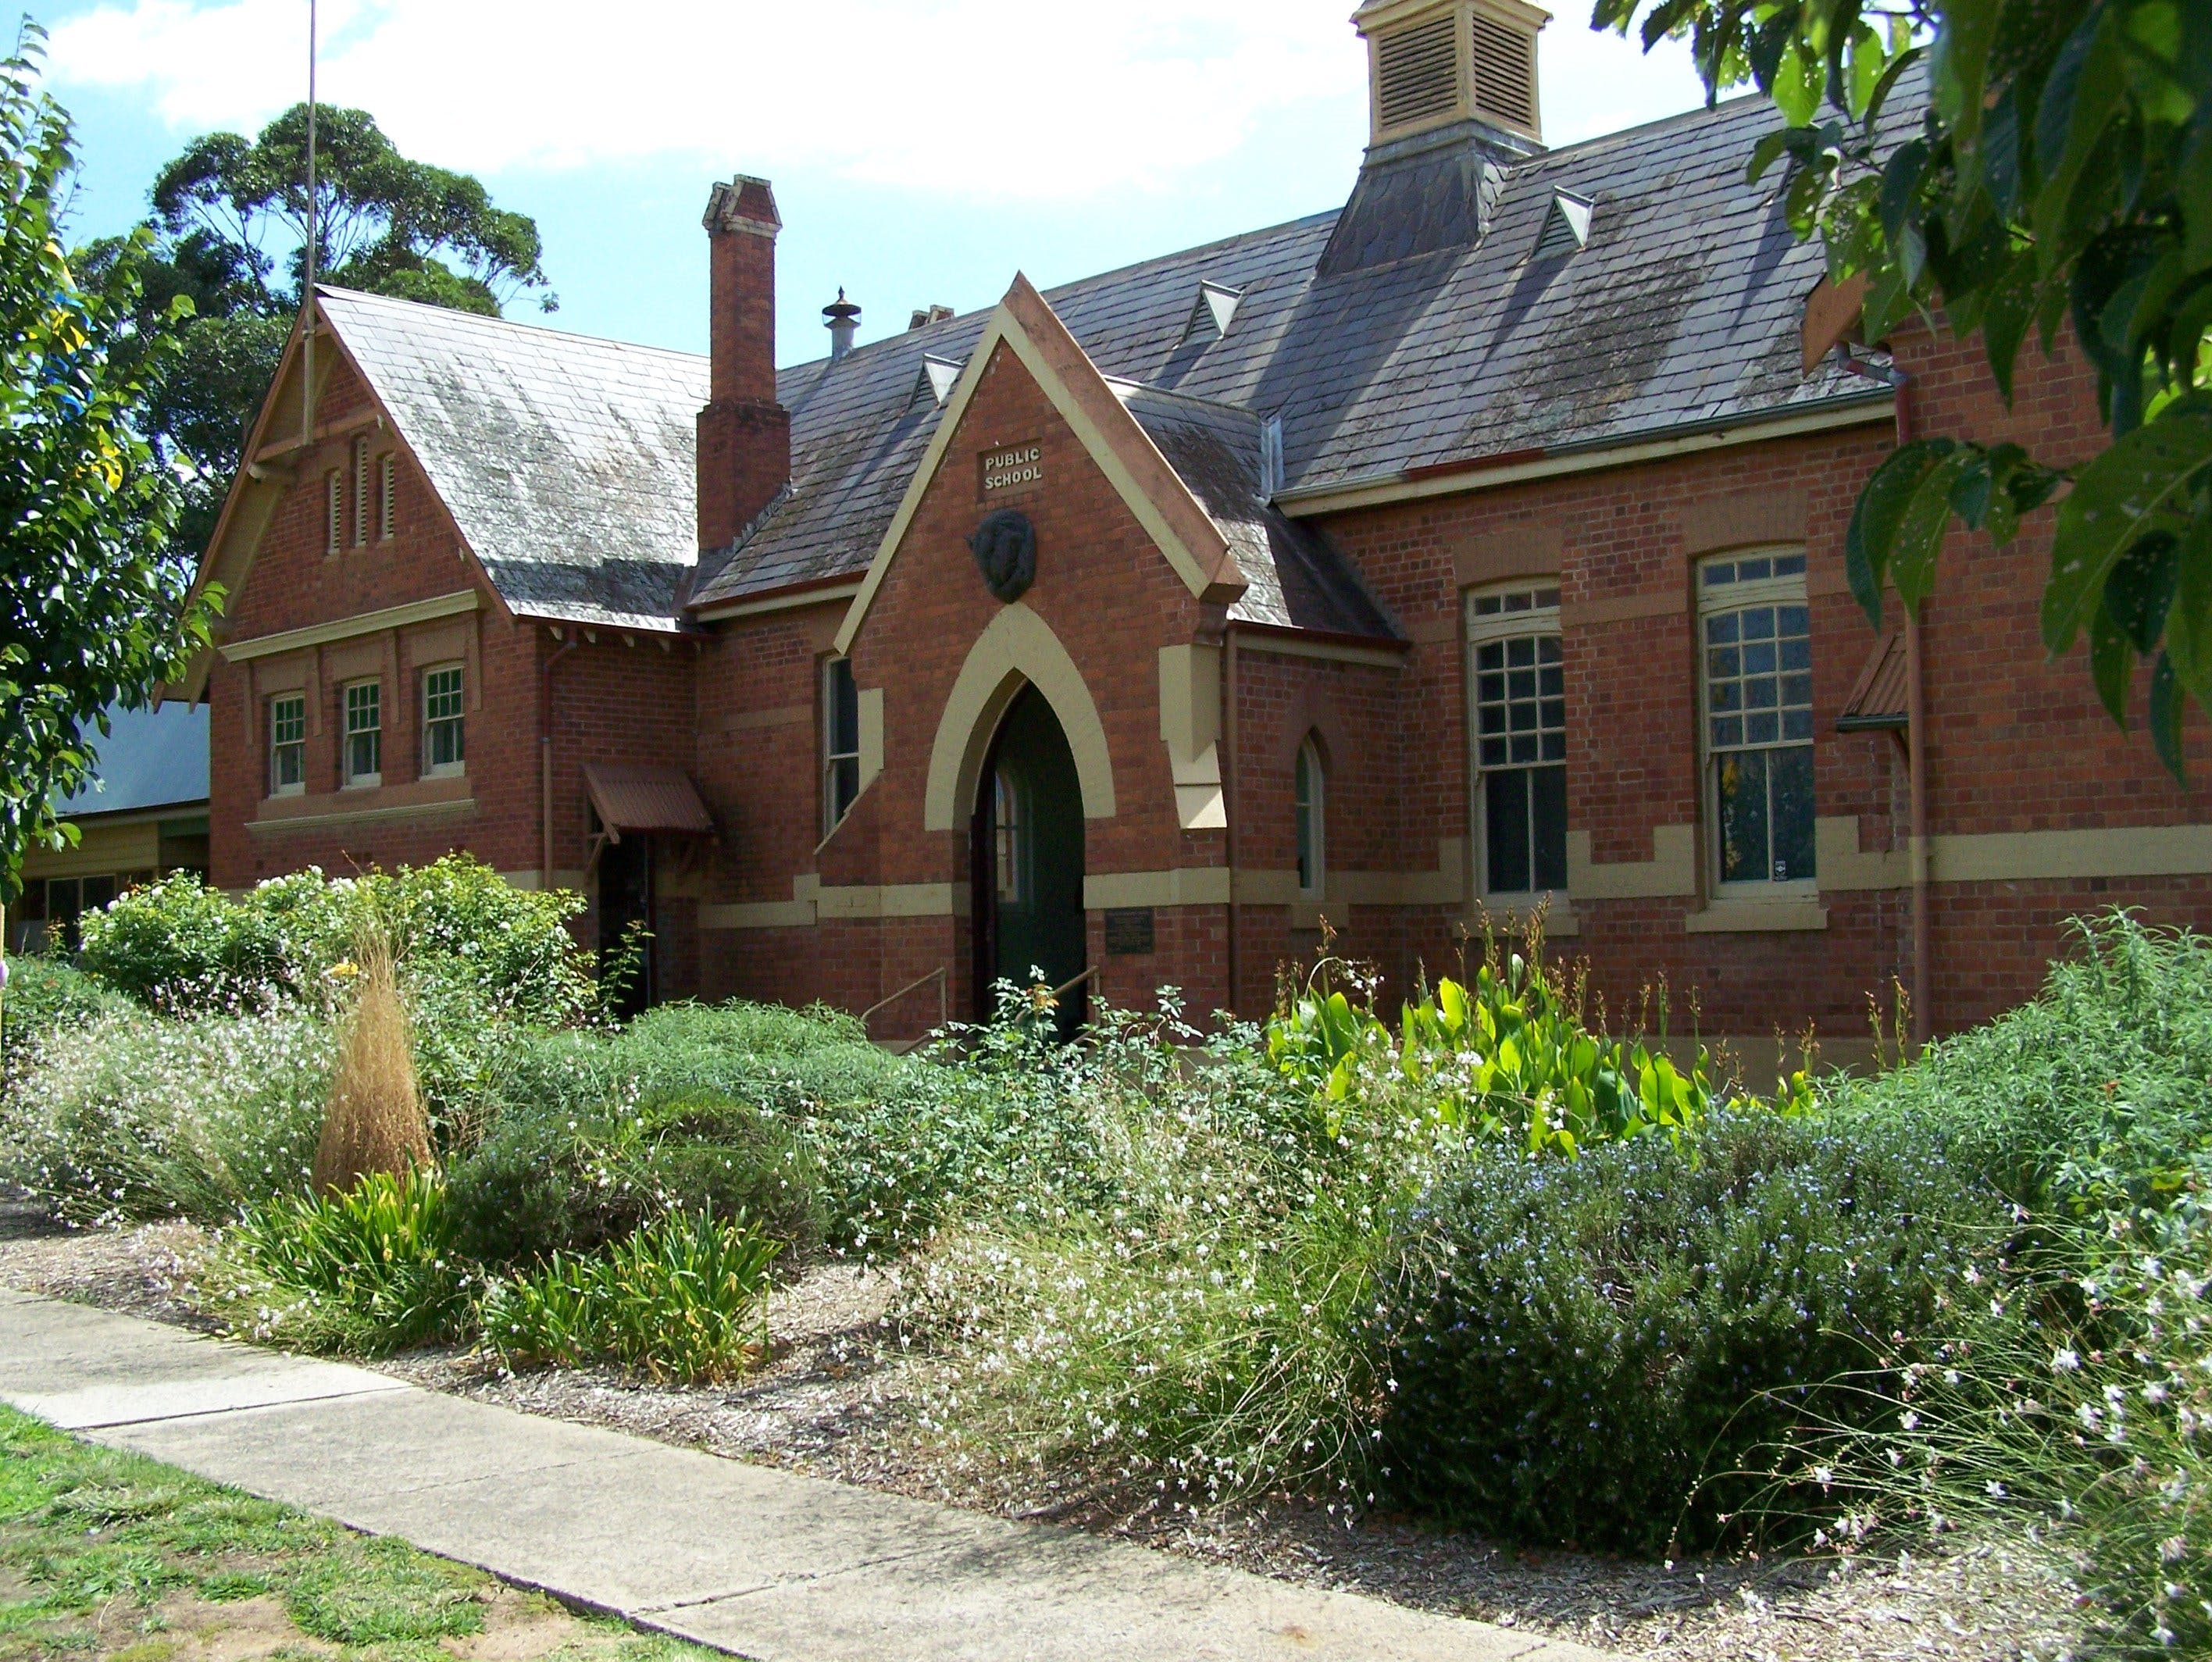 Peppin Heritage Centre - Accommodation Kalgoorlie